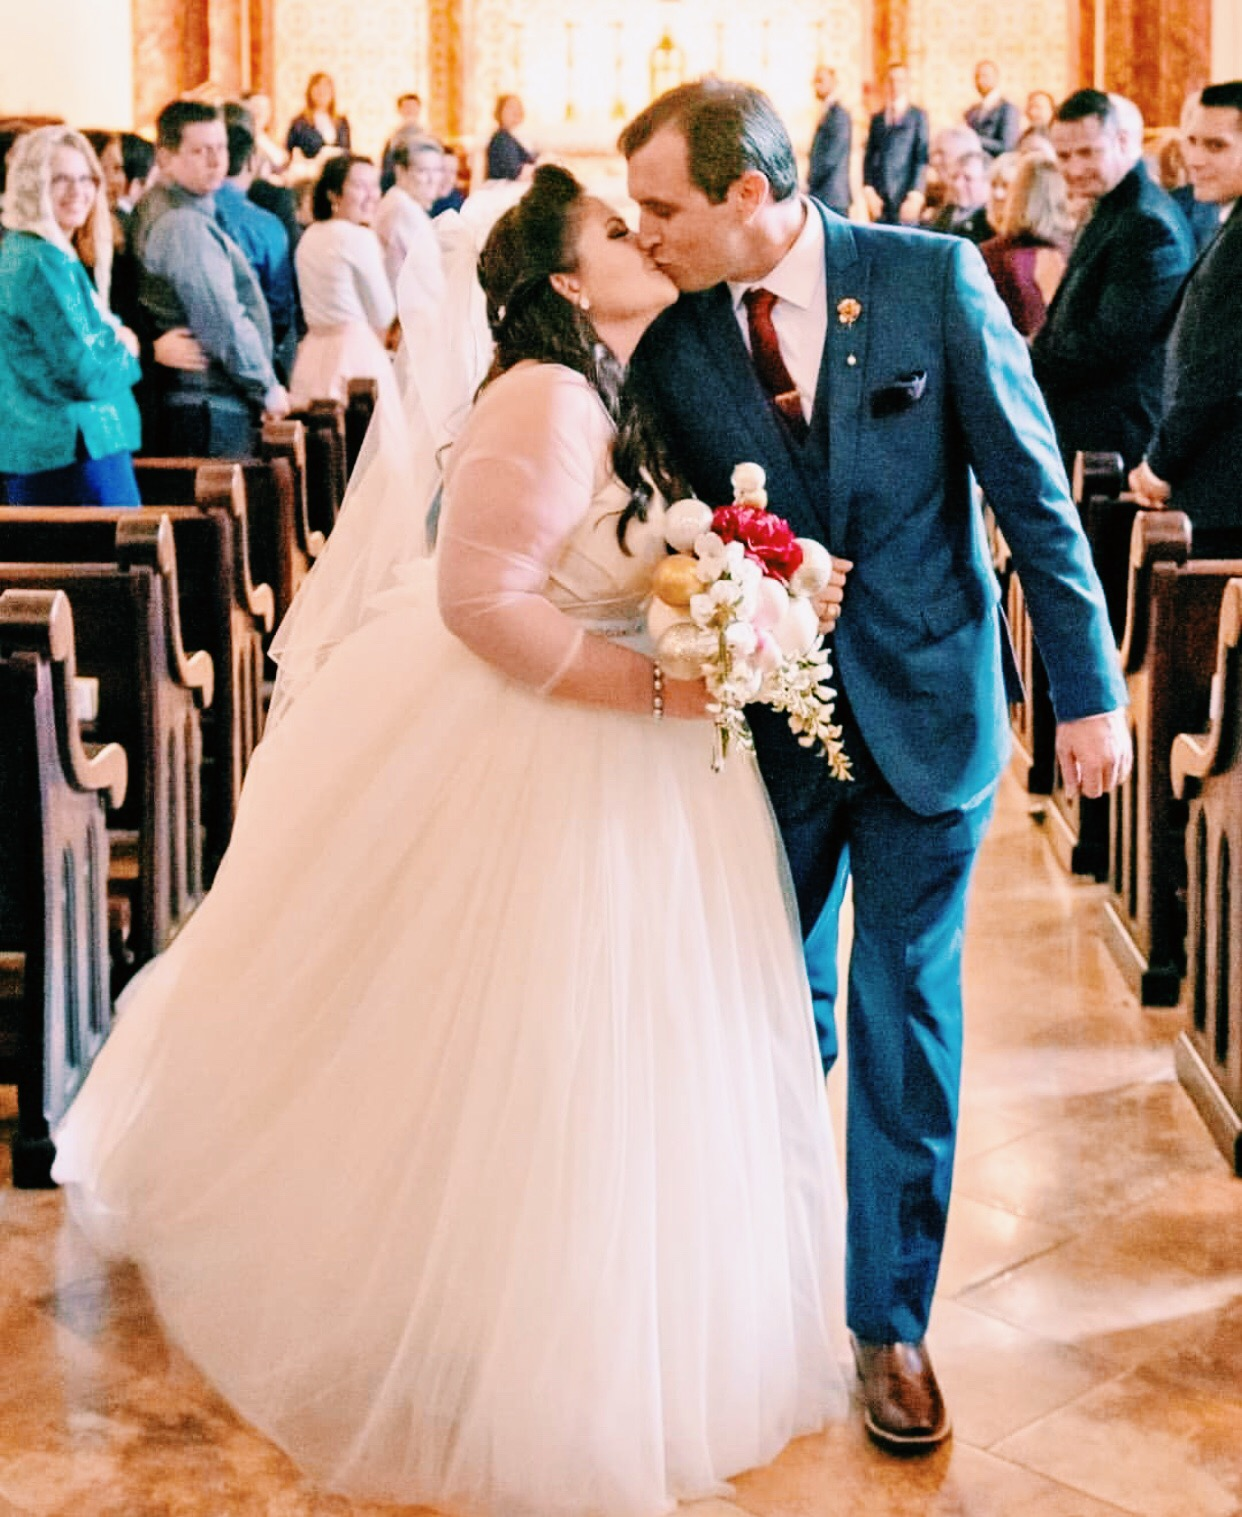 Greer Image Consulting - Where To Shop For The Perfect Wedding Dress in Austin, Texas - Raquel Talks About Having a Custom Dress Made At Kira Kouture